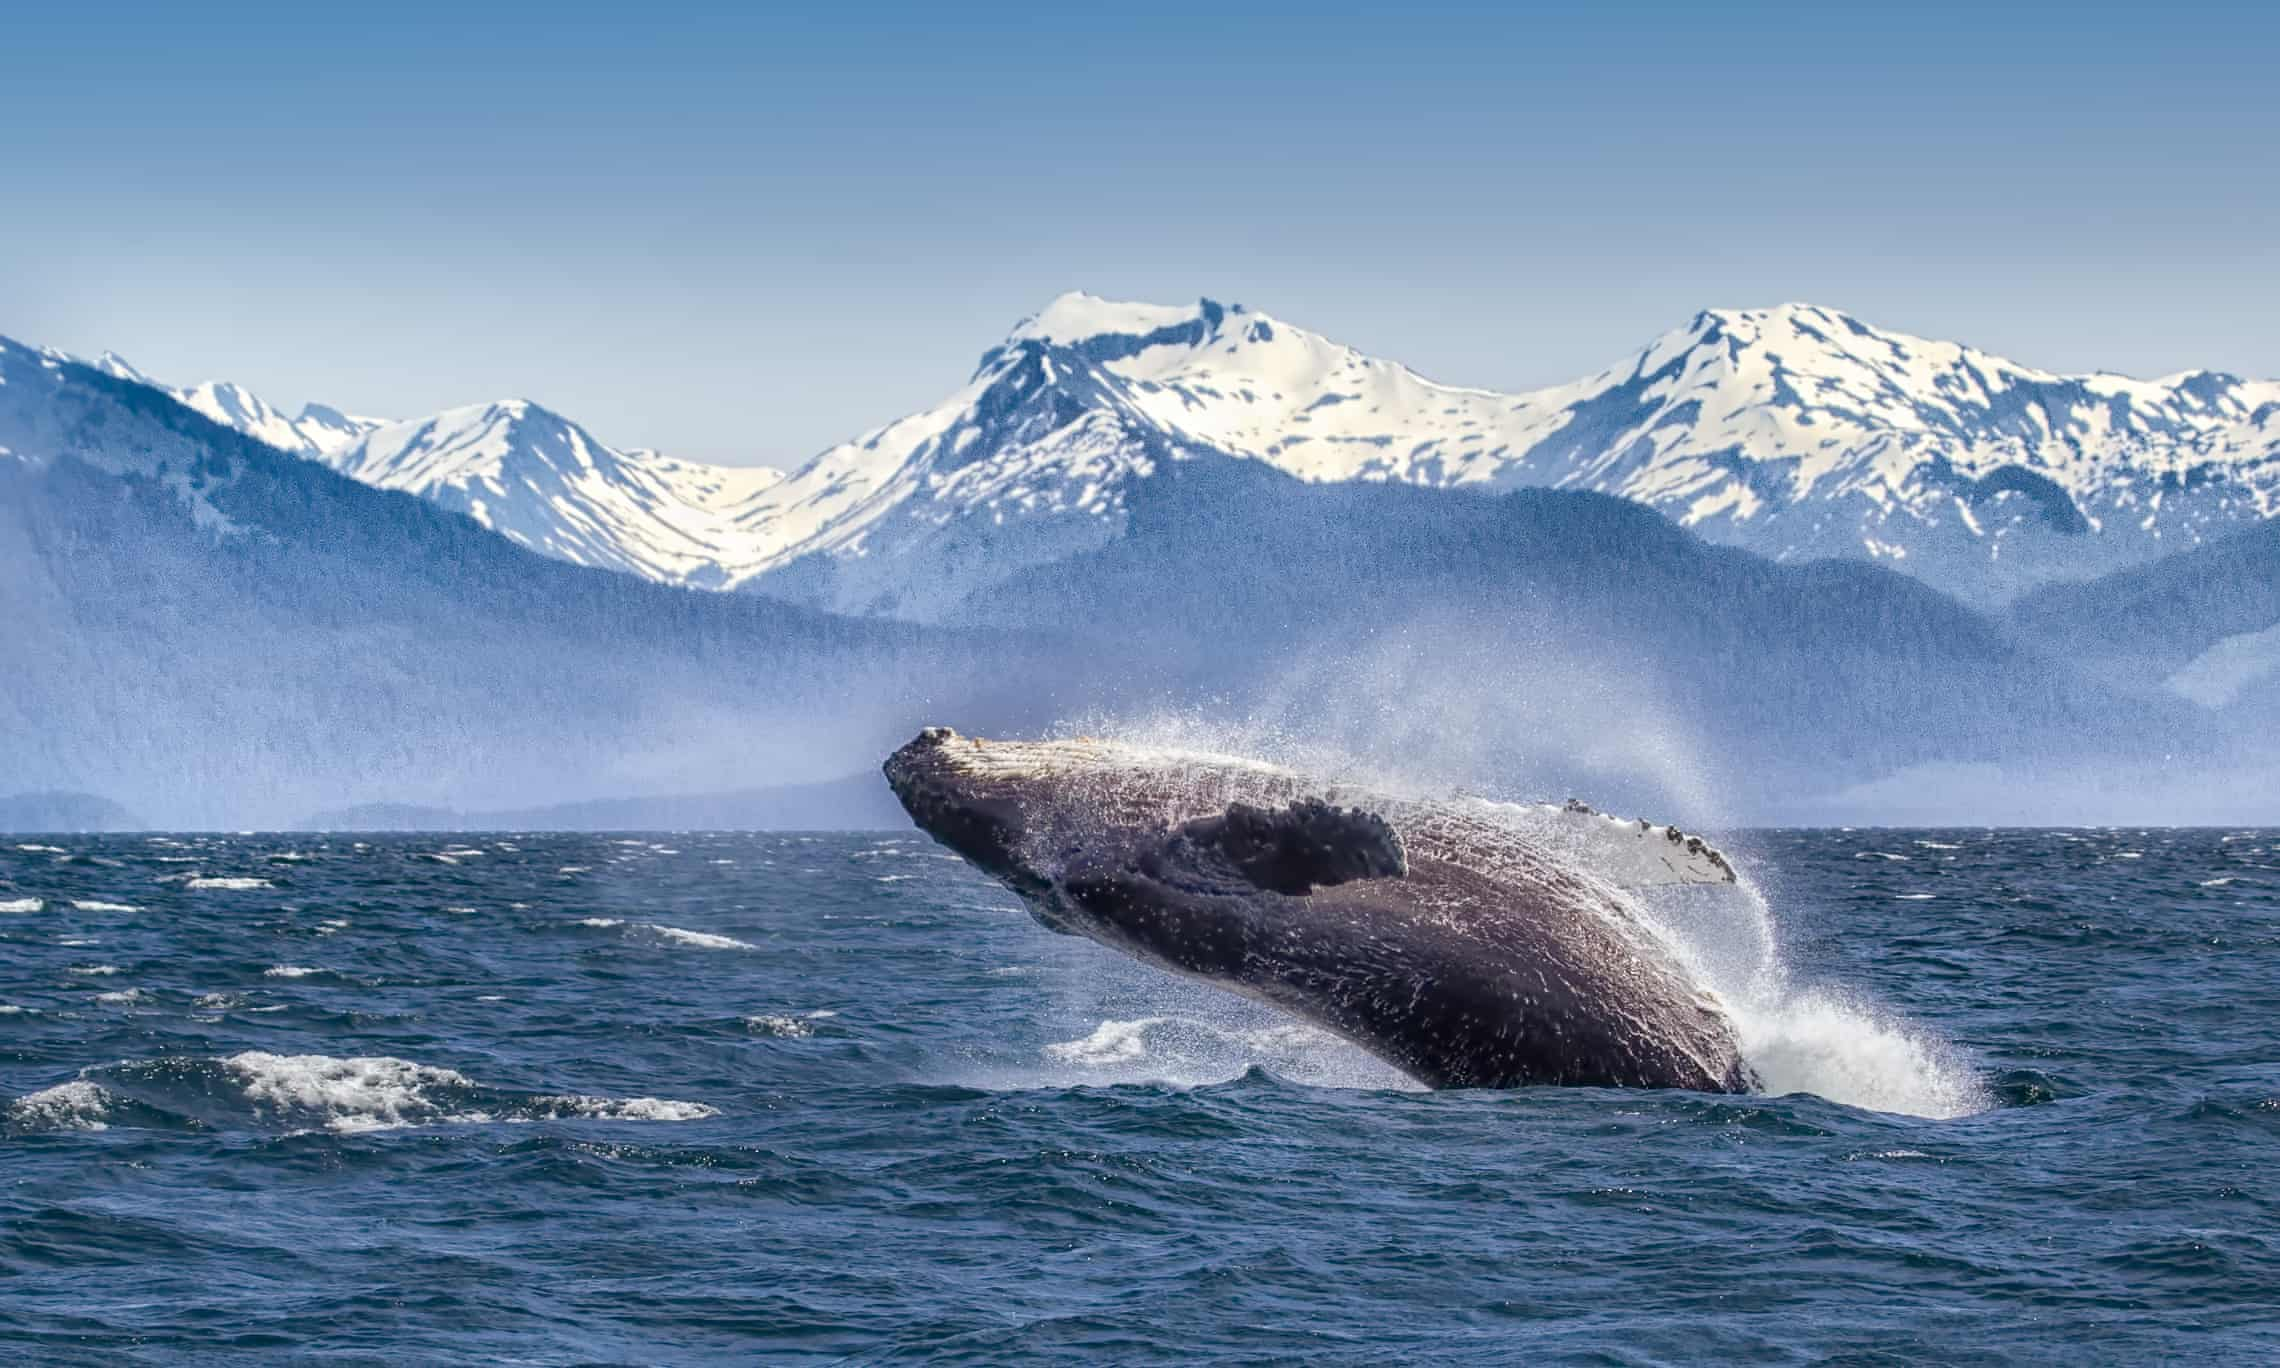 Breaching humpback whale against snow capped mountains seen in the distance in Glacier Bay, Alaska. Photograph: Betty Wiley/Getty Images